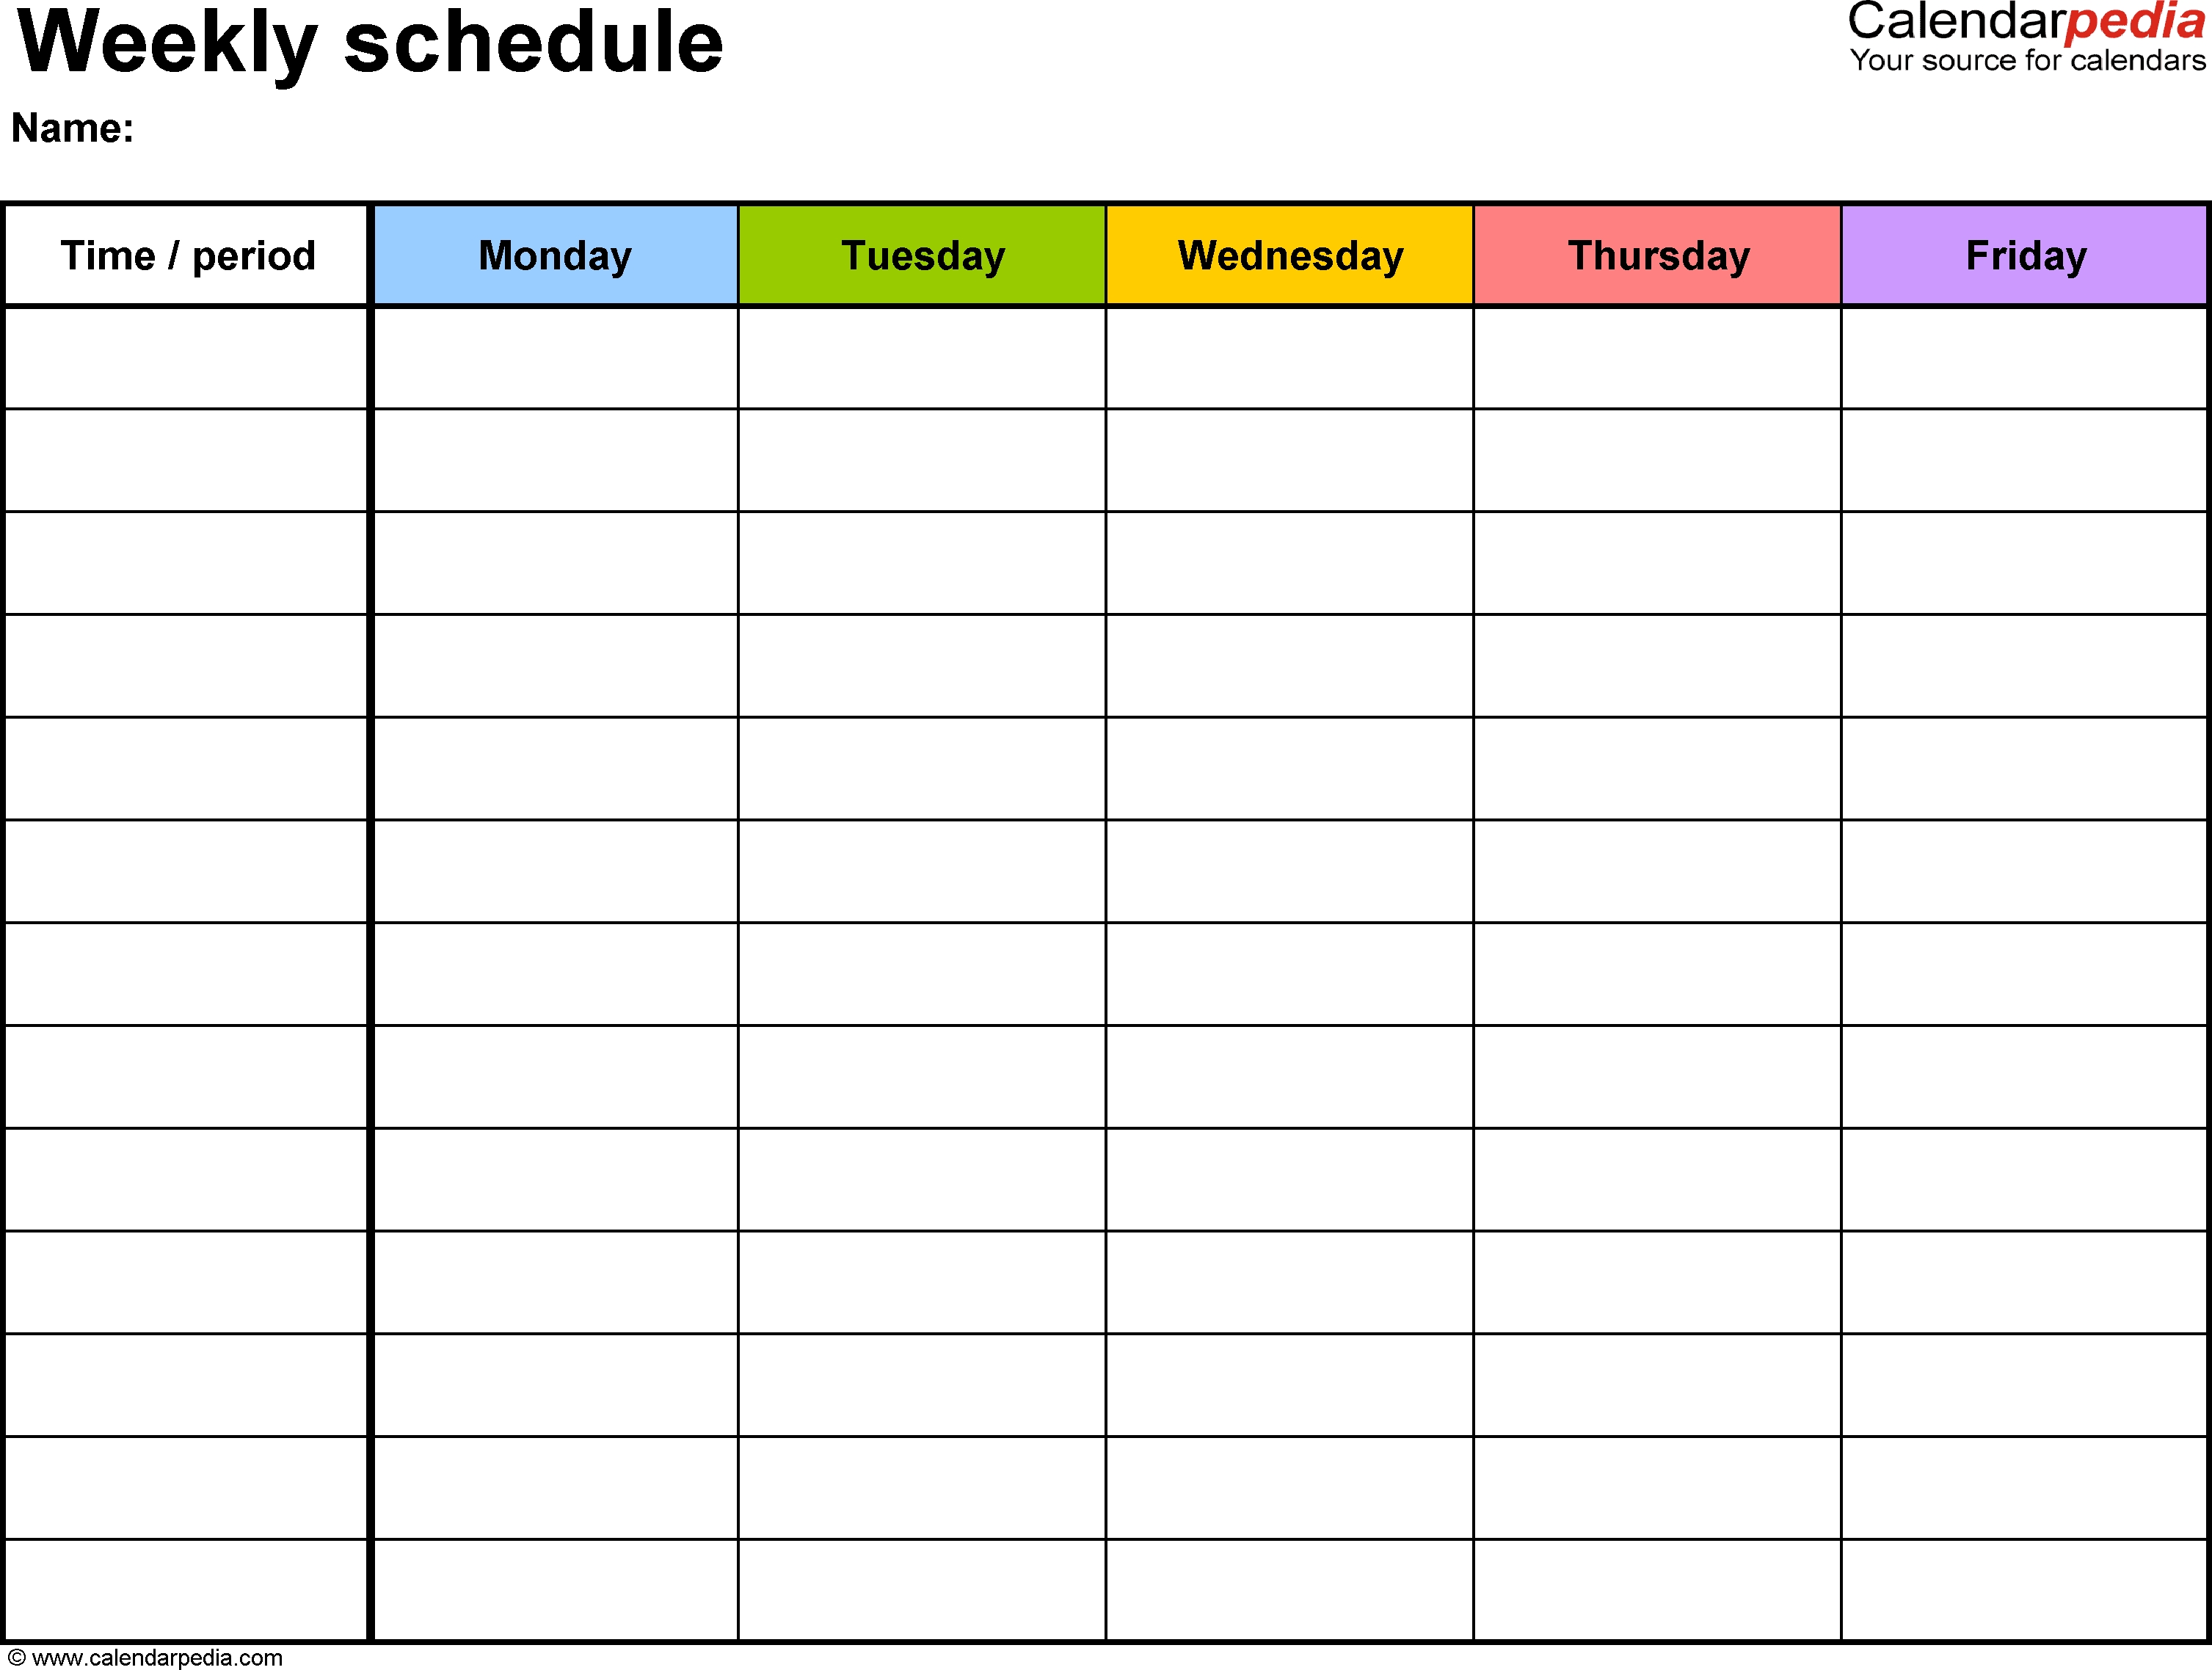 Free Weekly Schedule Templates For Word - 18 Templates-Mon To Friday Monthly Calendar Templates